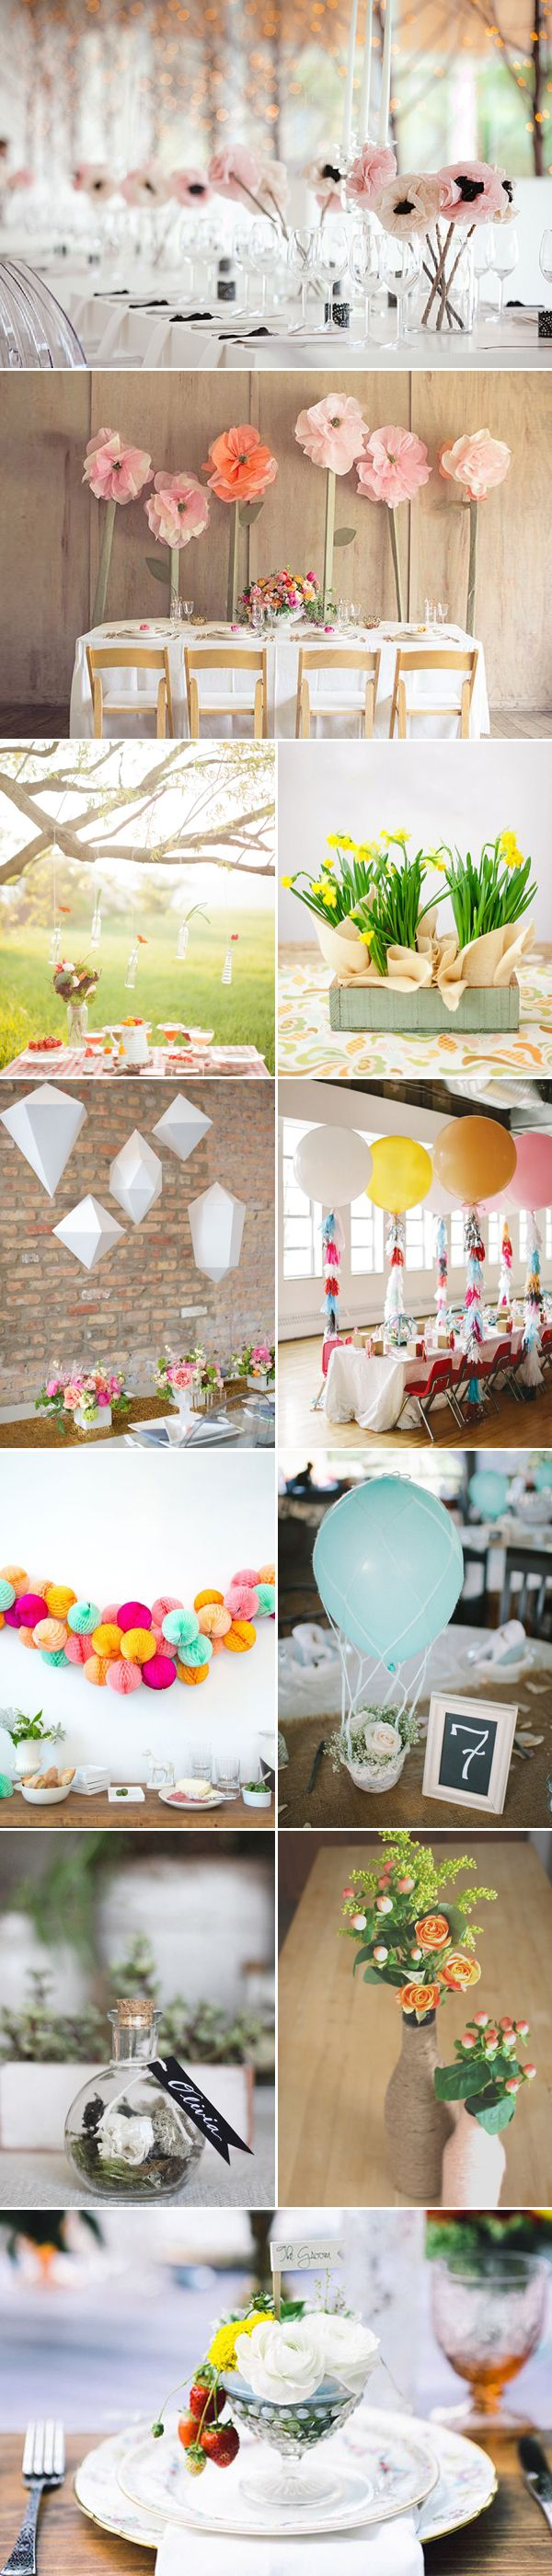 48 Creative Handmade Wedding Details - Tablescape